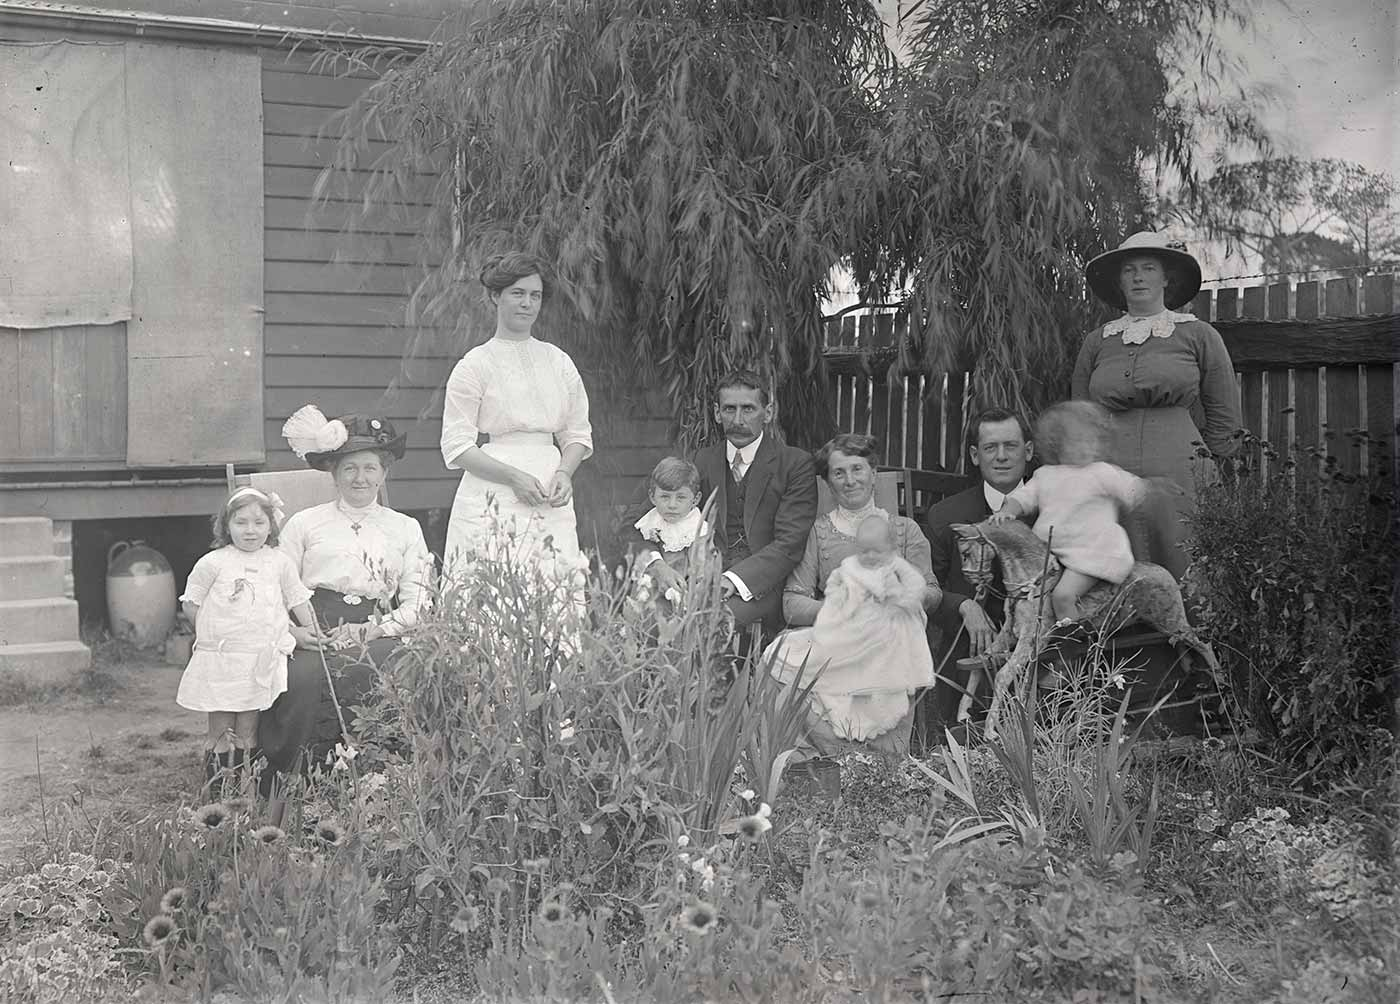 A photographic glass plate negative showing a group portrait of men, women, and children in a front garden. The group comprises of four woman, two men, and four children all in various poses. Two toy rocking horses are being played with by the children, and a section of a house is visible in the background. - click to view larger image